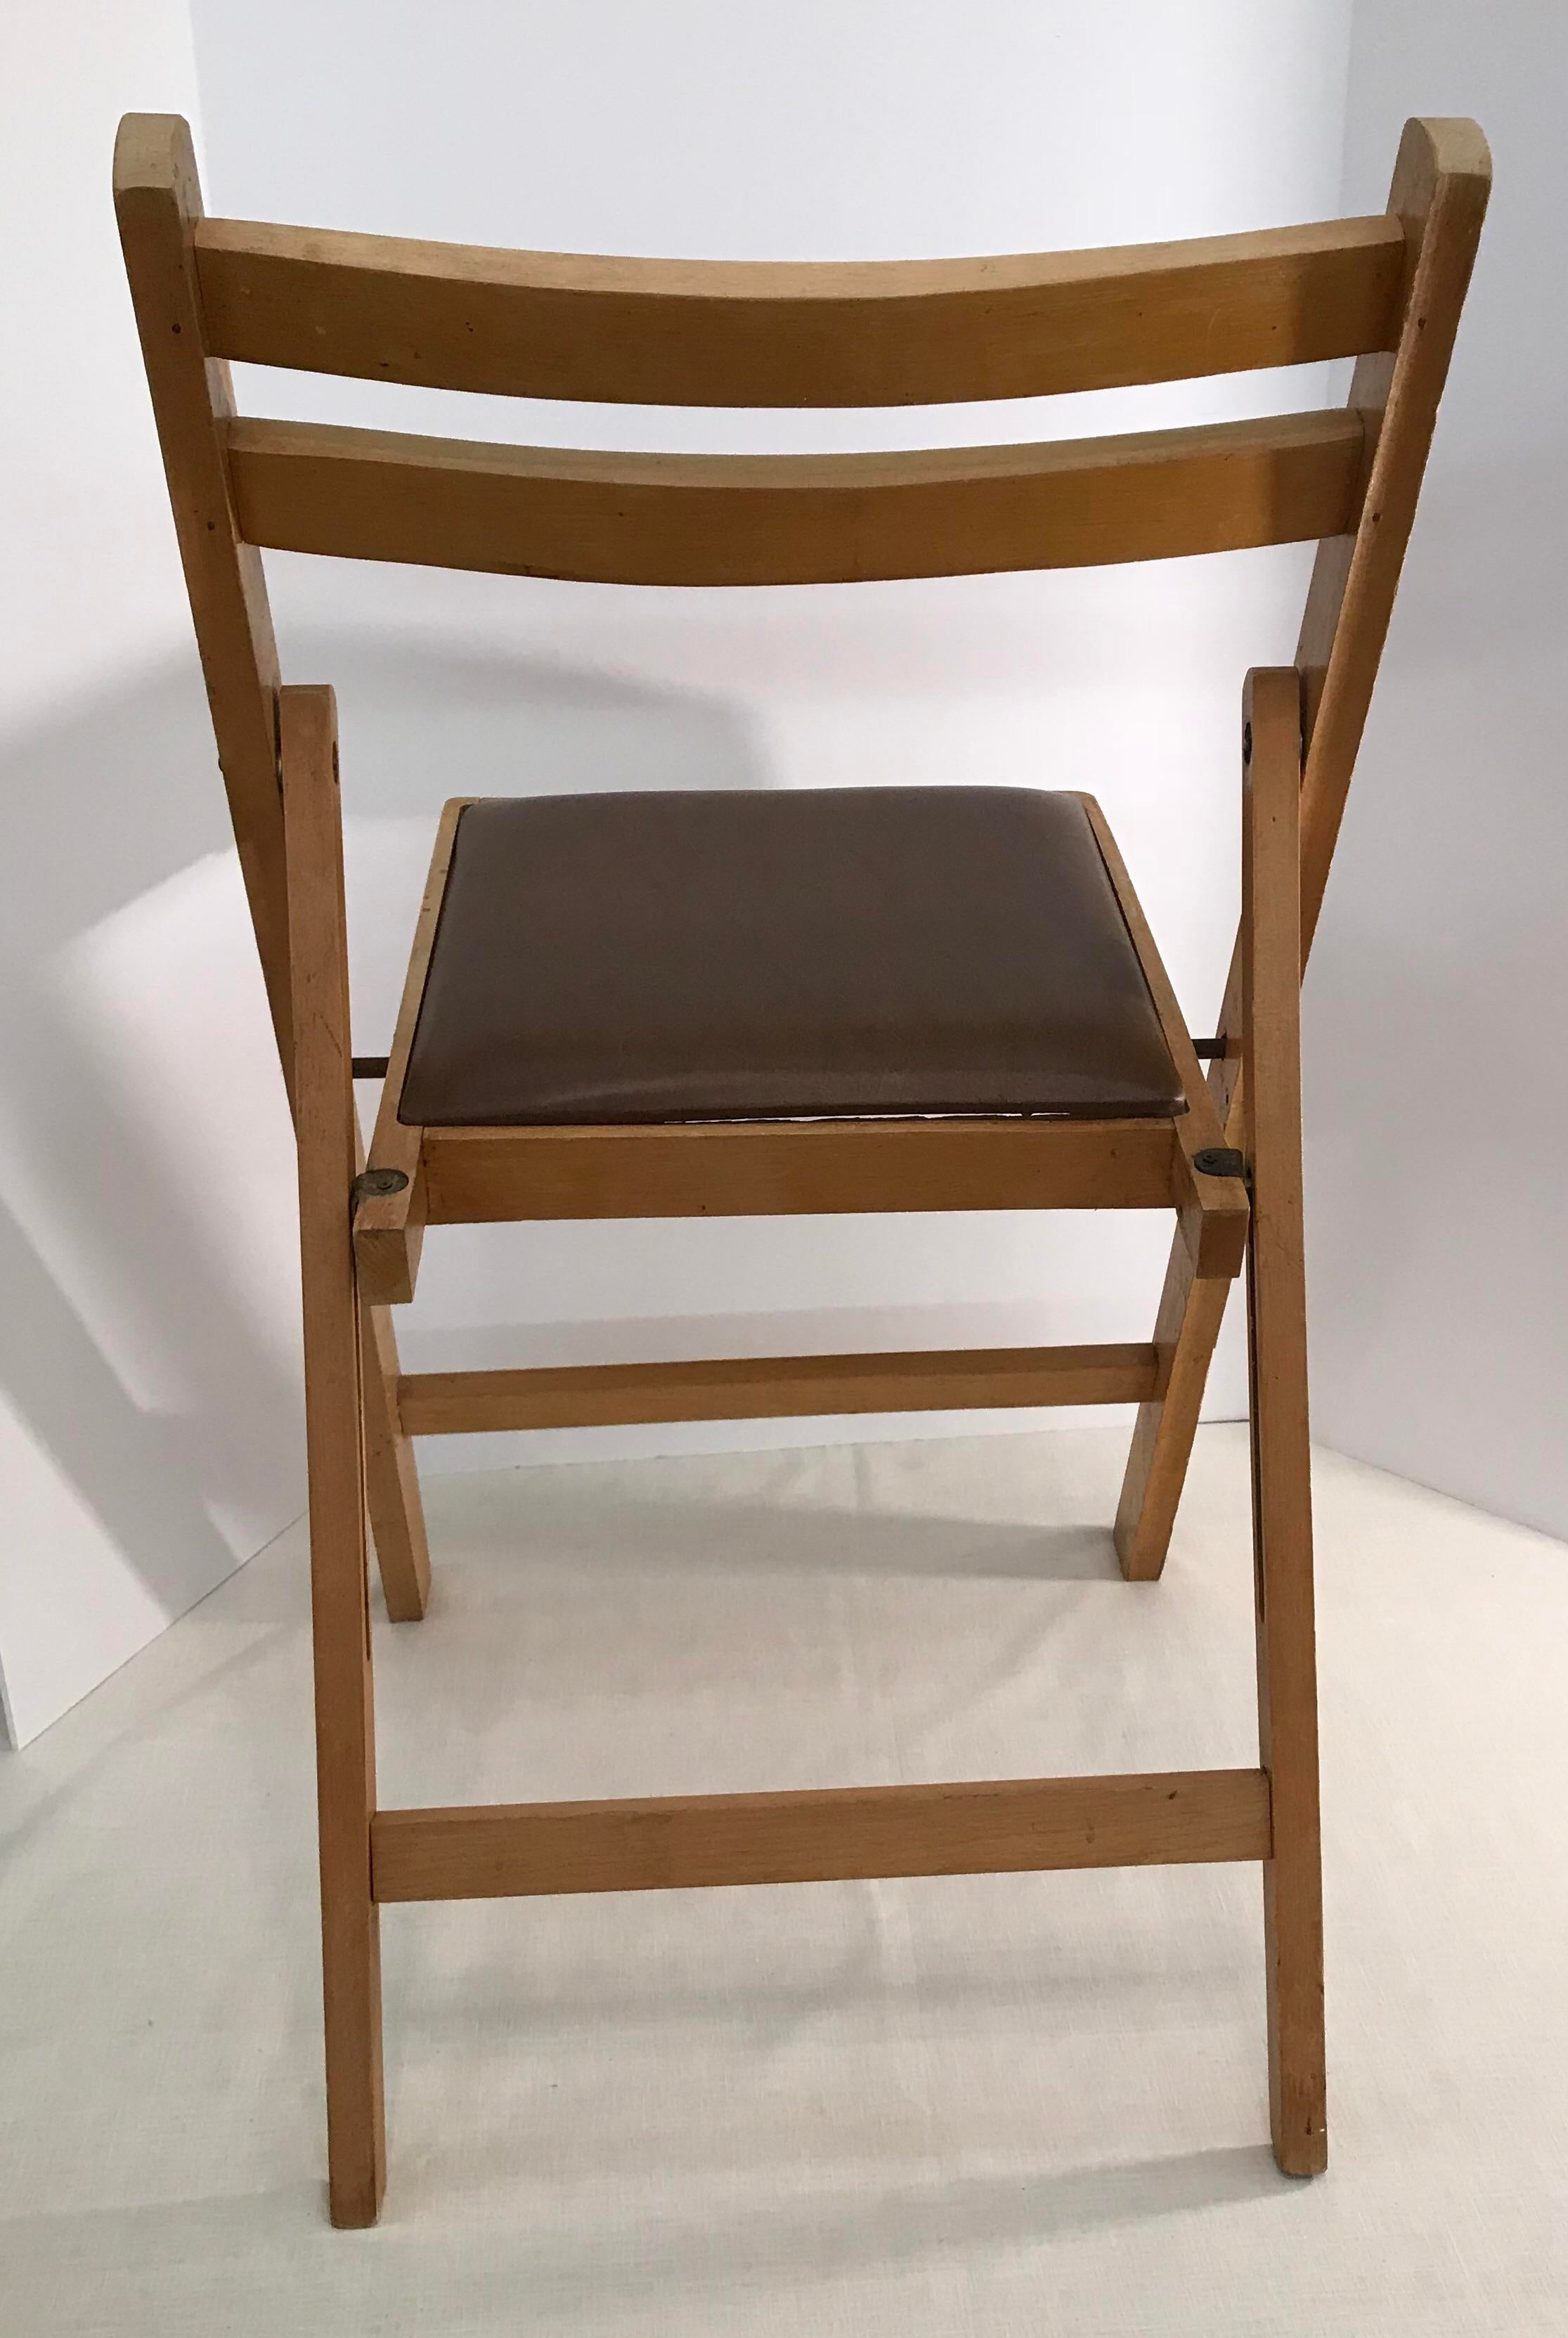 Vintage Wooden Folding Chair, Made In Romania   Image 7 Of 11